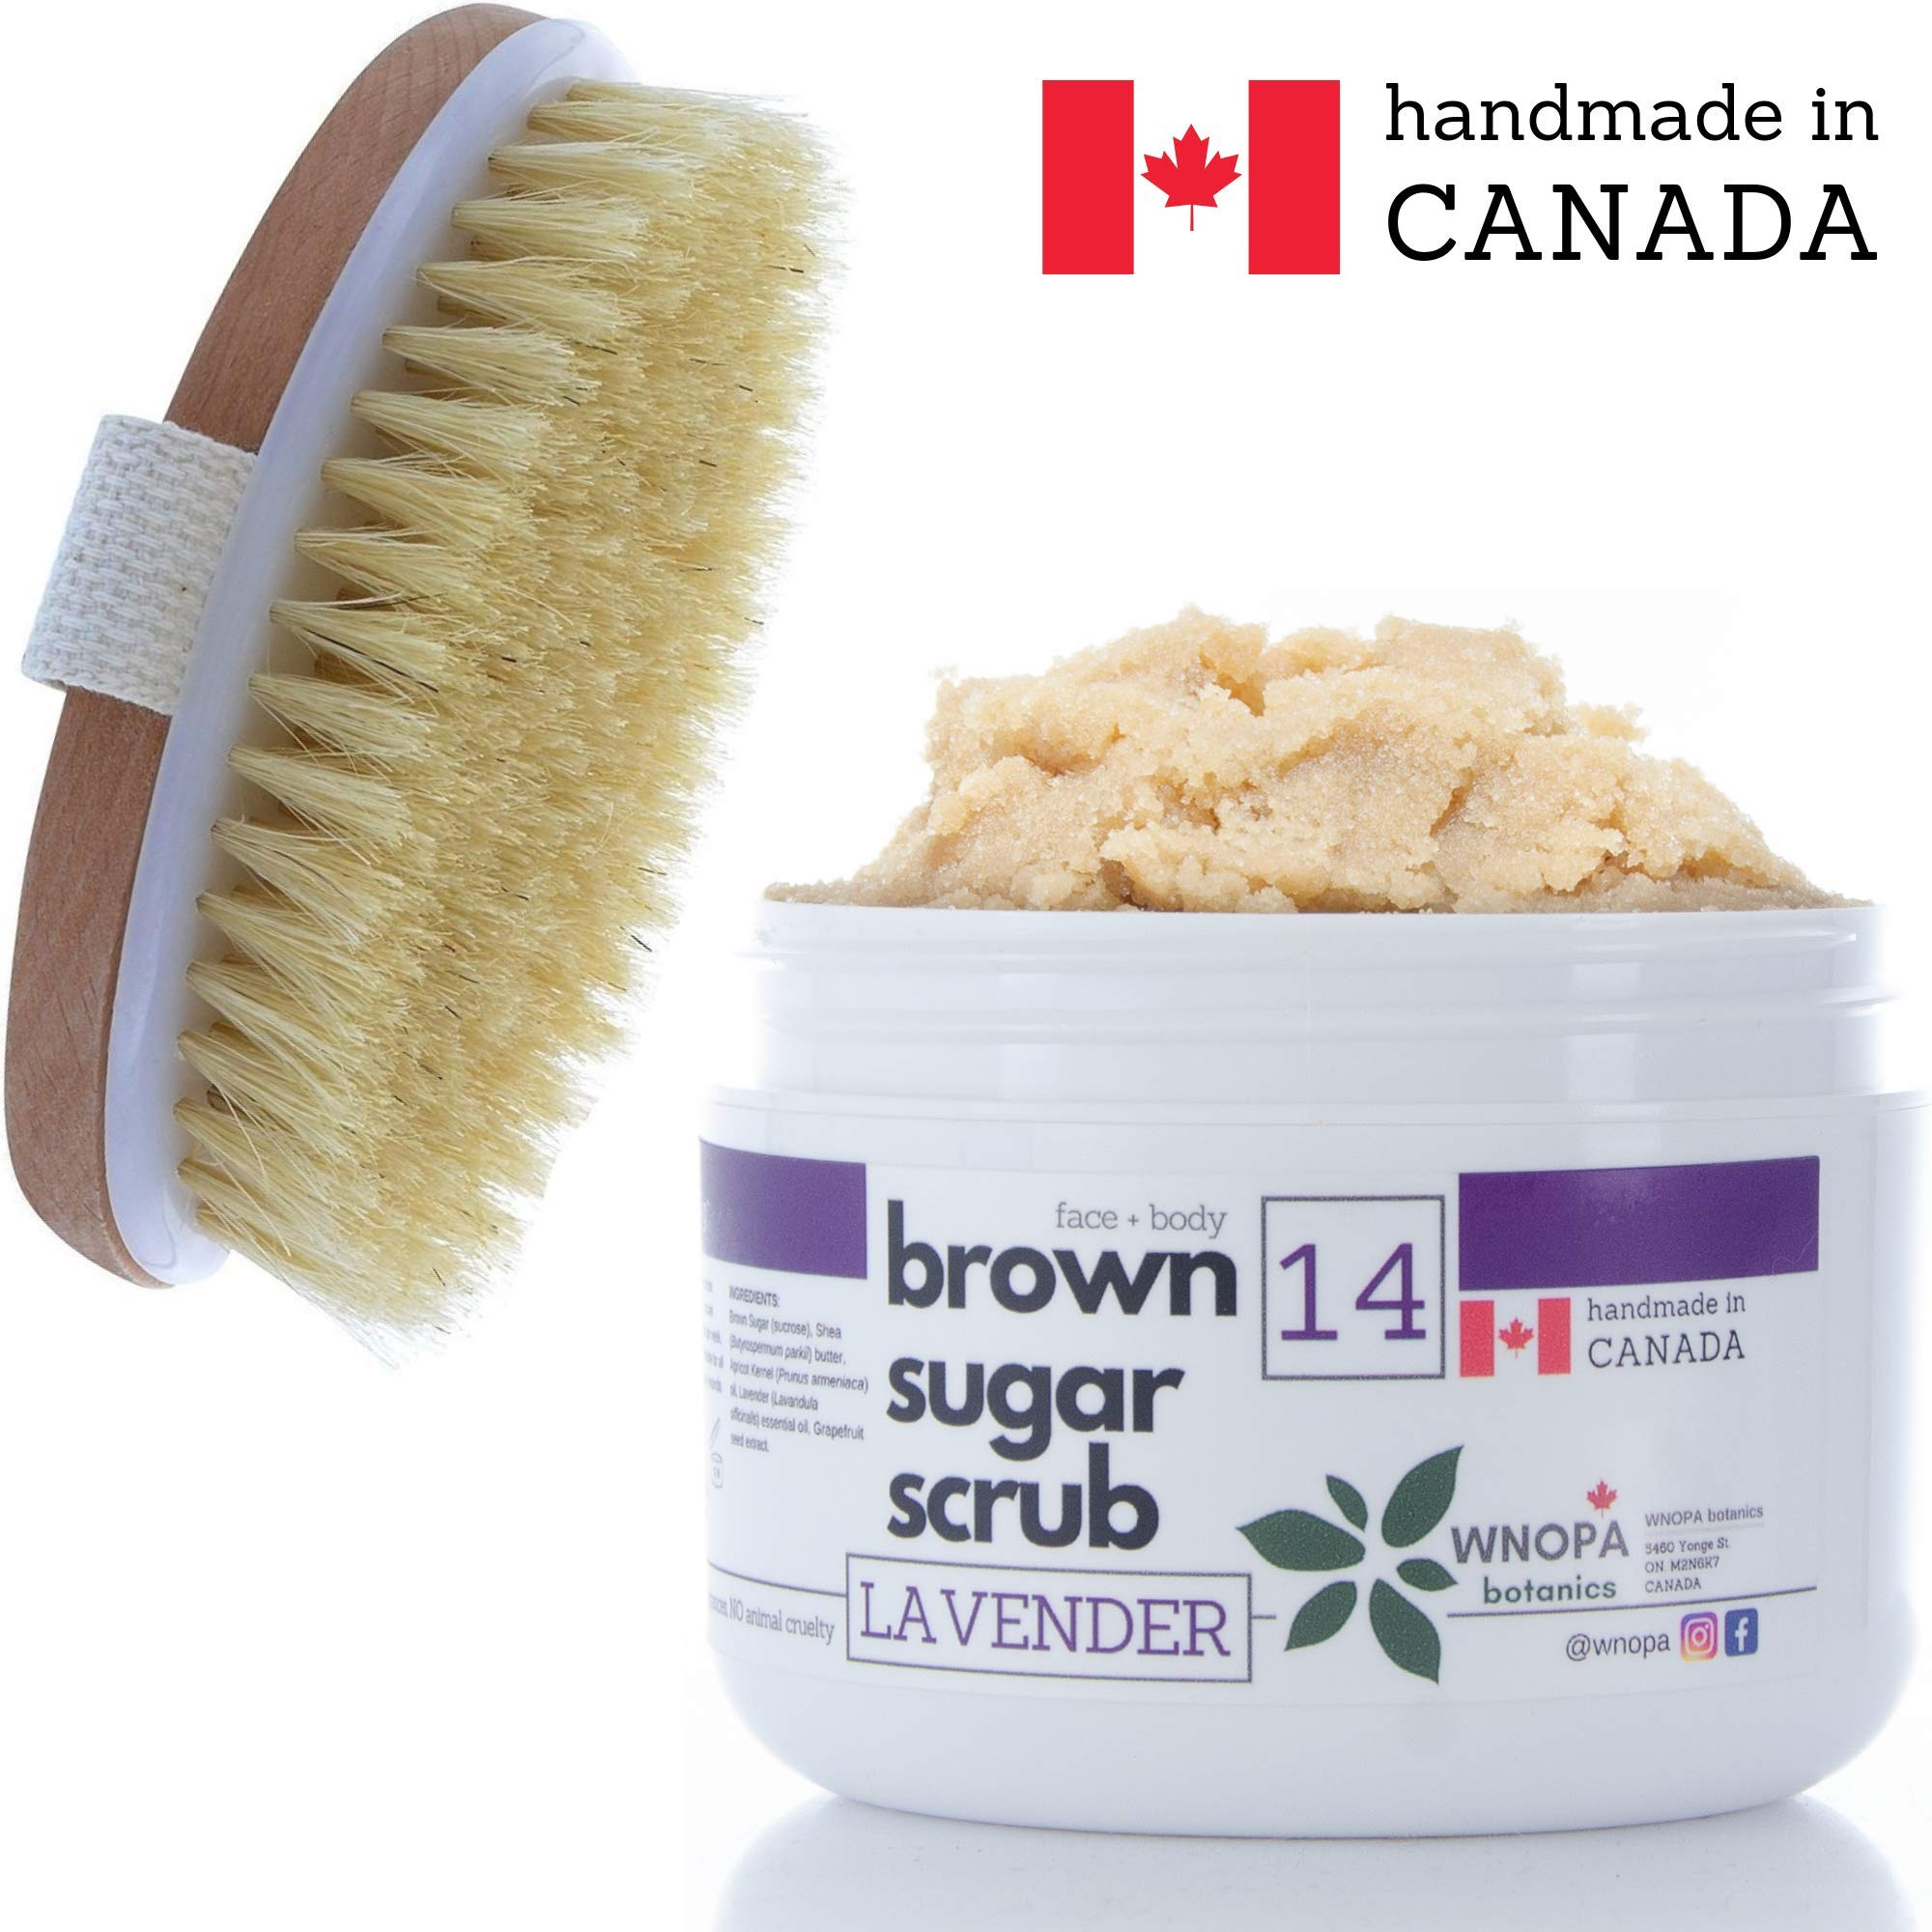 Sugar Scrub Body Exfoliator + Dry Brushing Body Brush - French Lavender Face Body Exfoliating Scrub with 100% Natural Botanics - Handmade in Canada - 10 oz + Body Scrub Brush (Lavender)